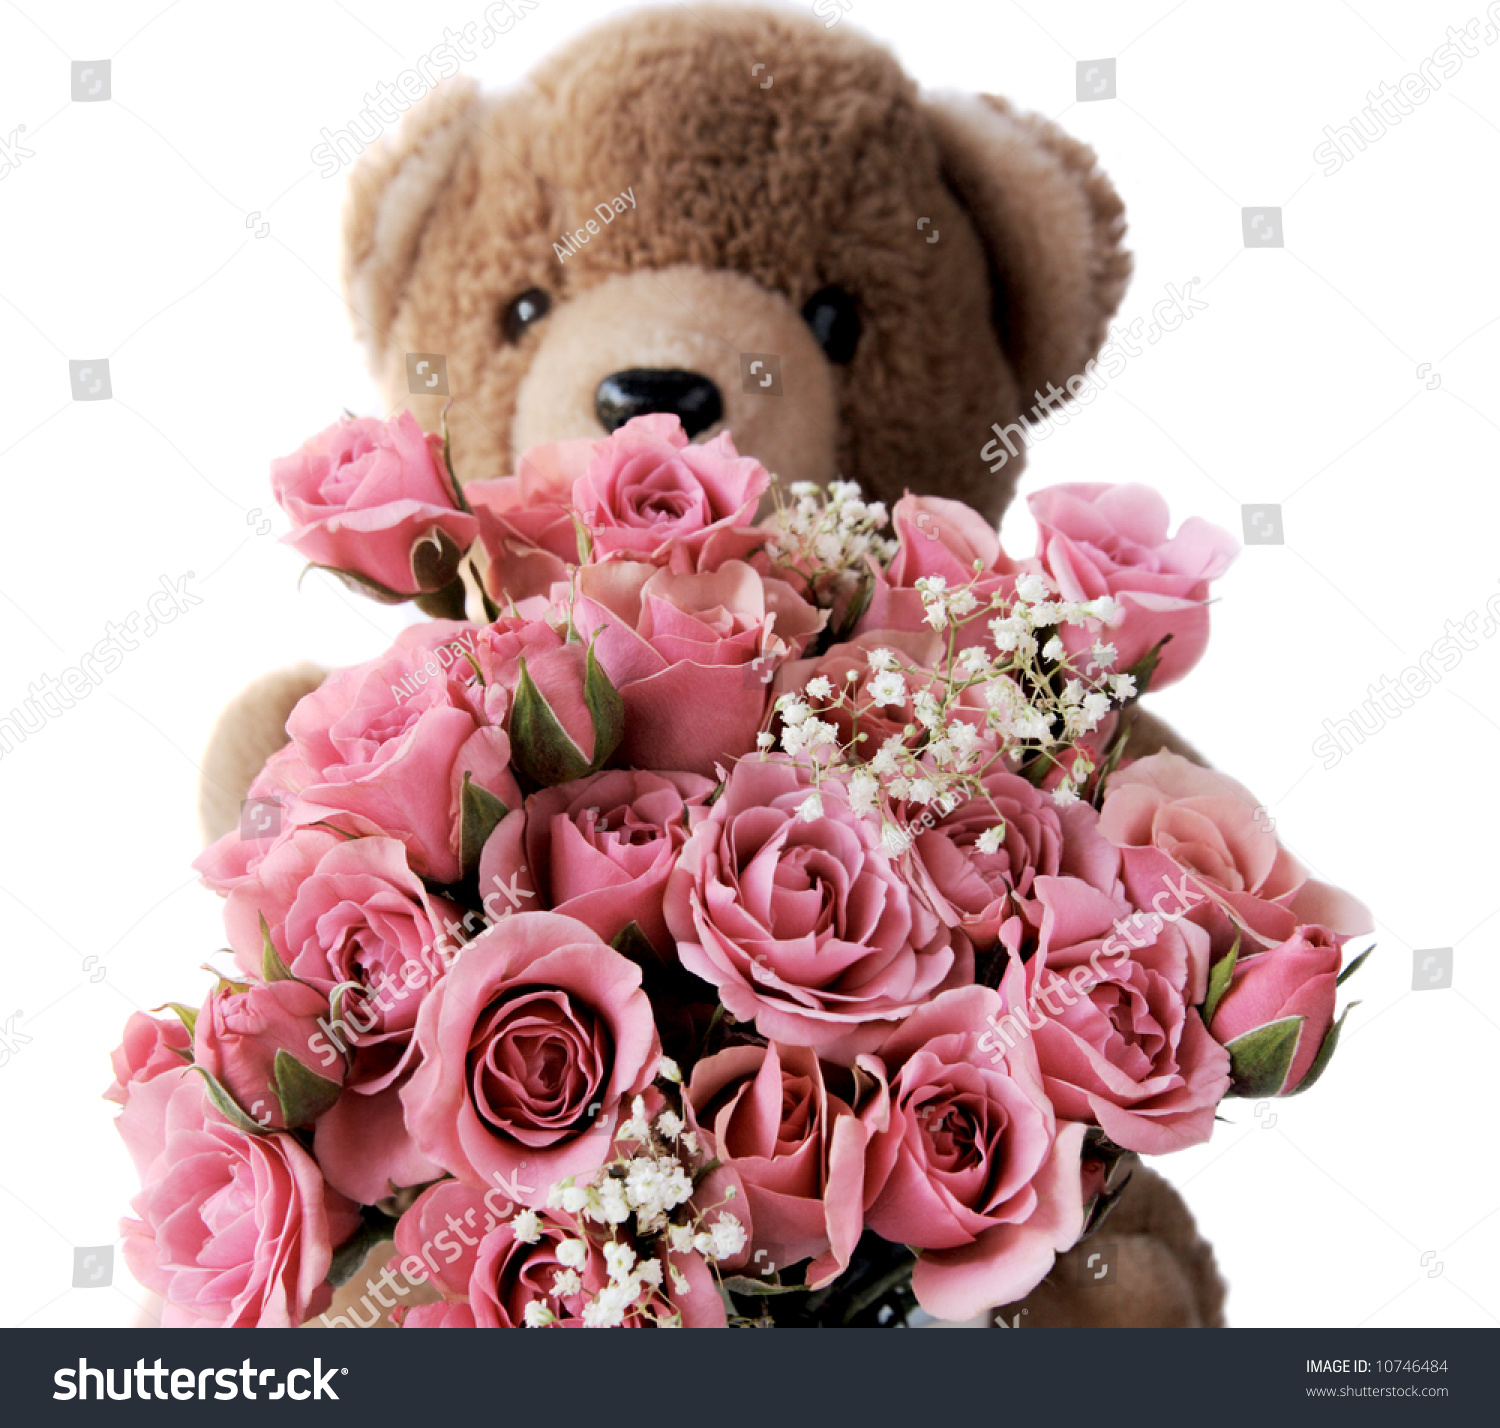 Teddy bear with pink roses - photo#15